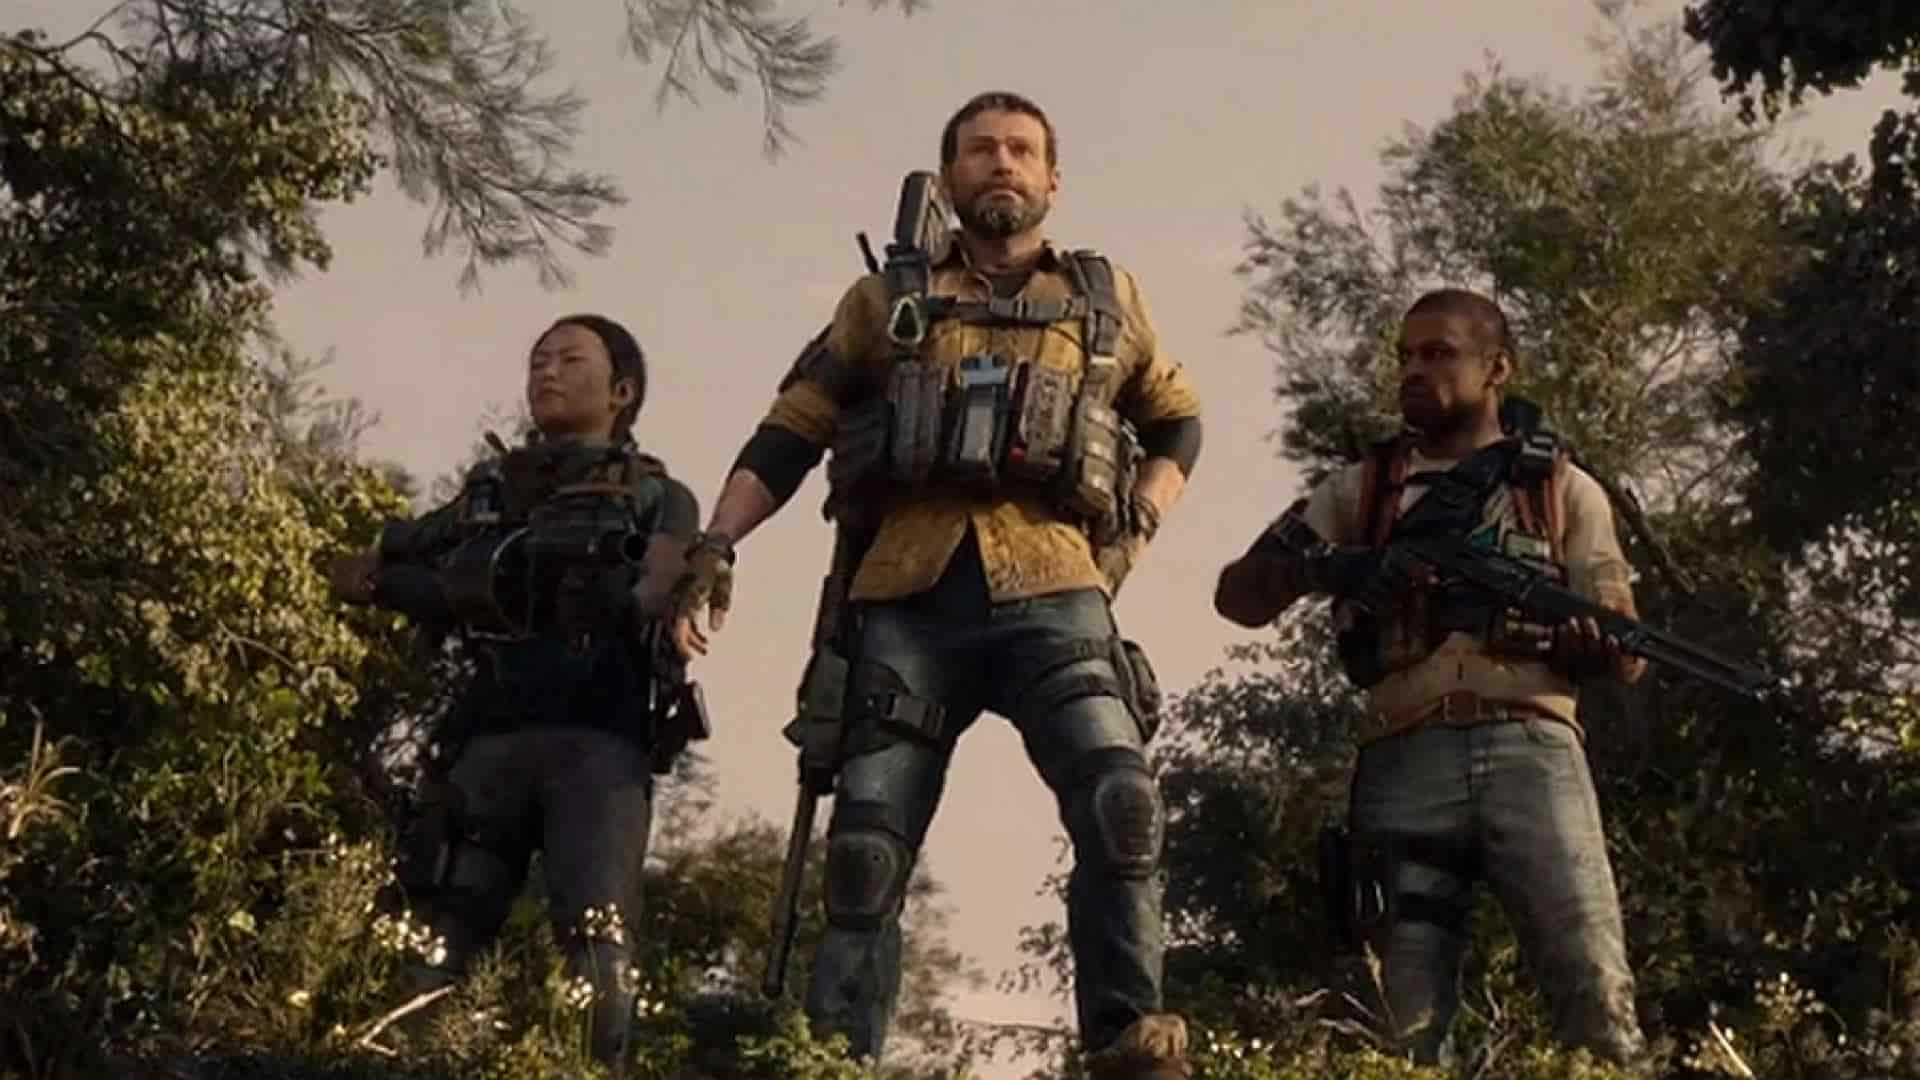 the division 2 apparel changes